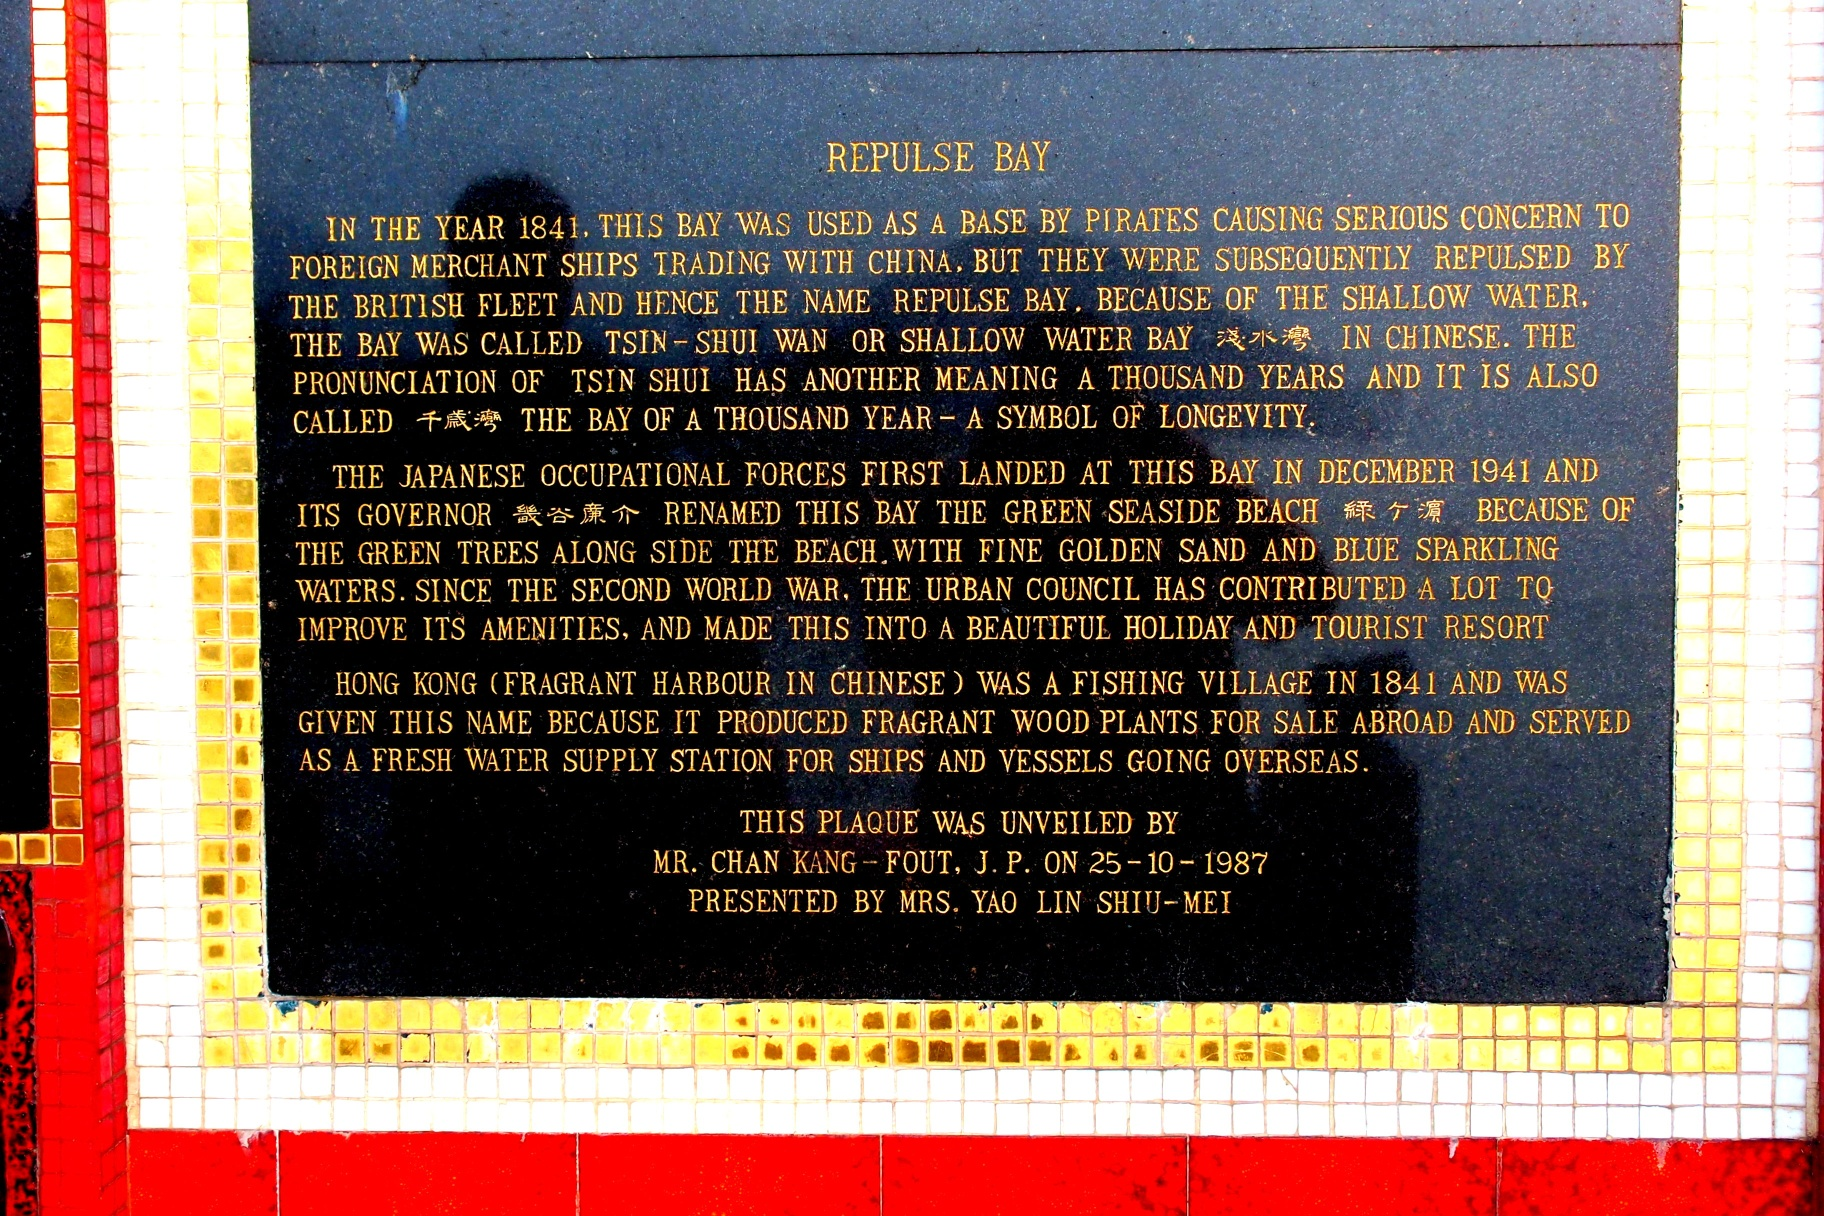 The story of Repulse Bay